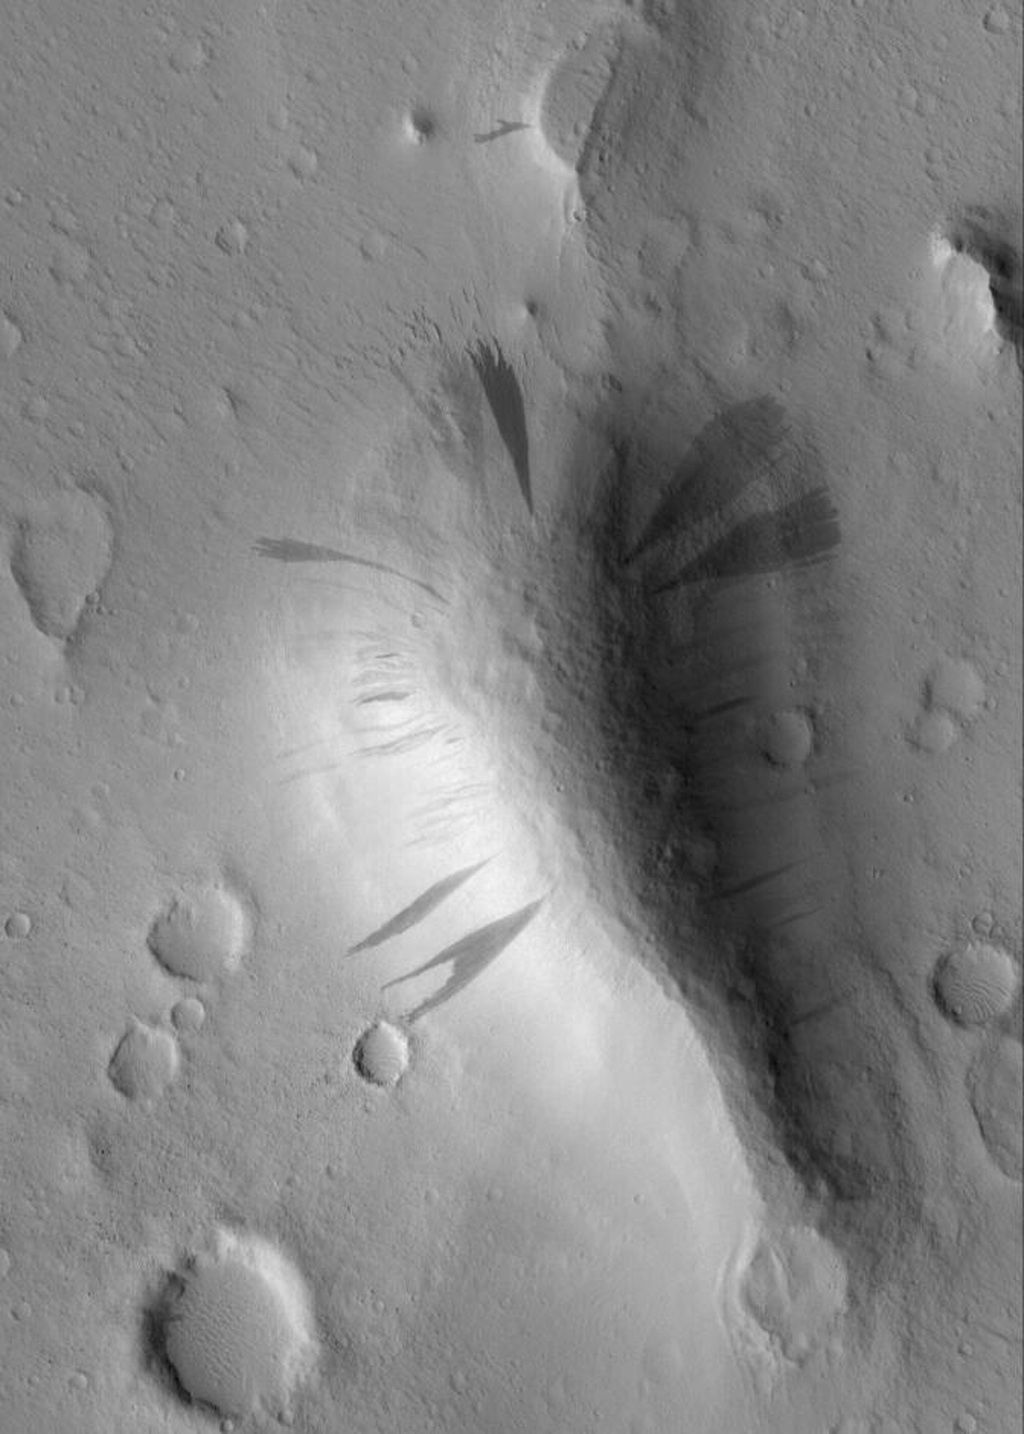 NASA's Mars Global Surveyor shows dark slope streaks coming down the slopes of a knob in western Amazonis Planitia on Mars. All of the surfaces are mantled by dust. On the slopes, mass movement of dry dust has created the streaks.